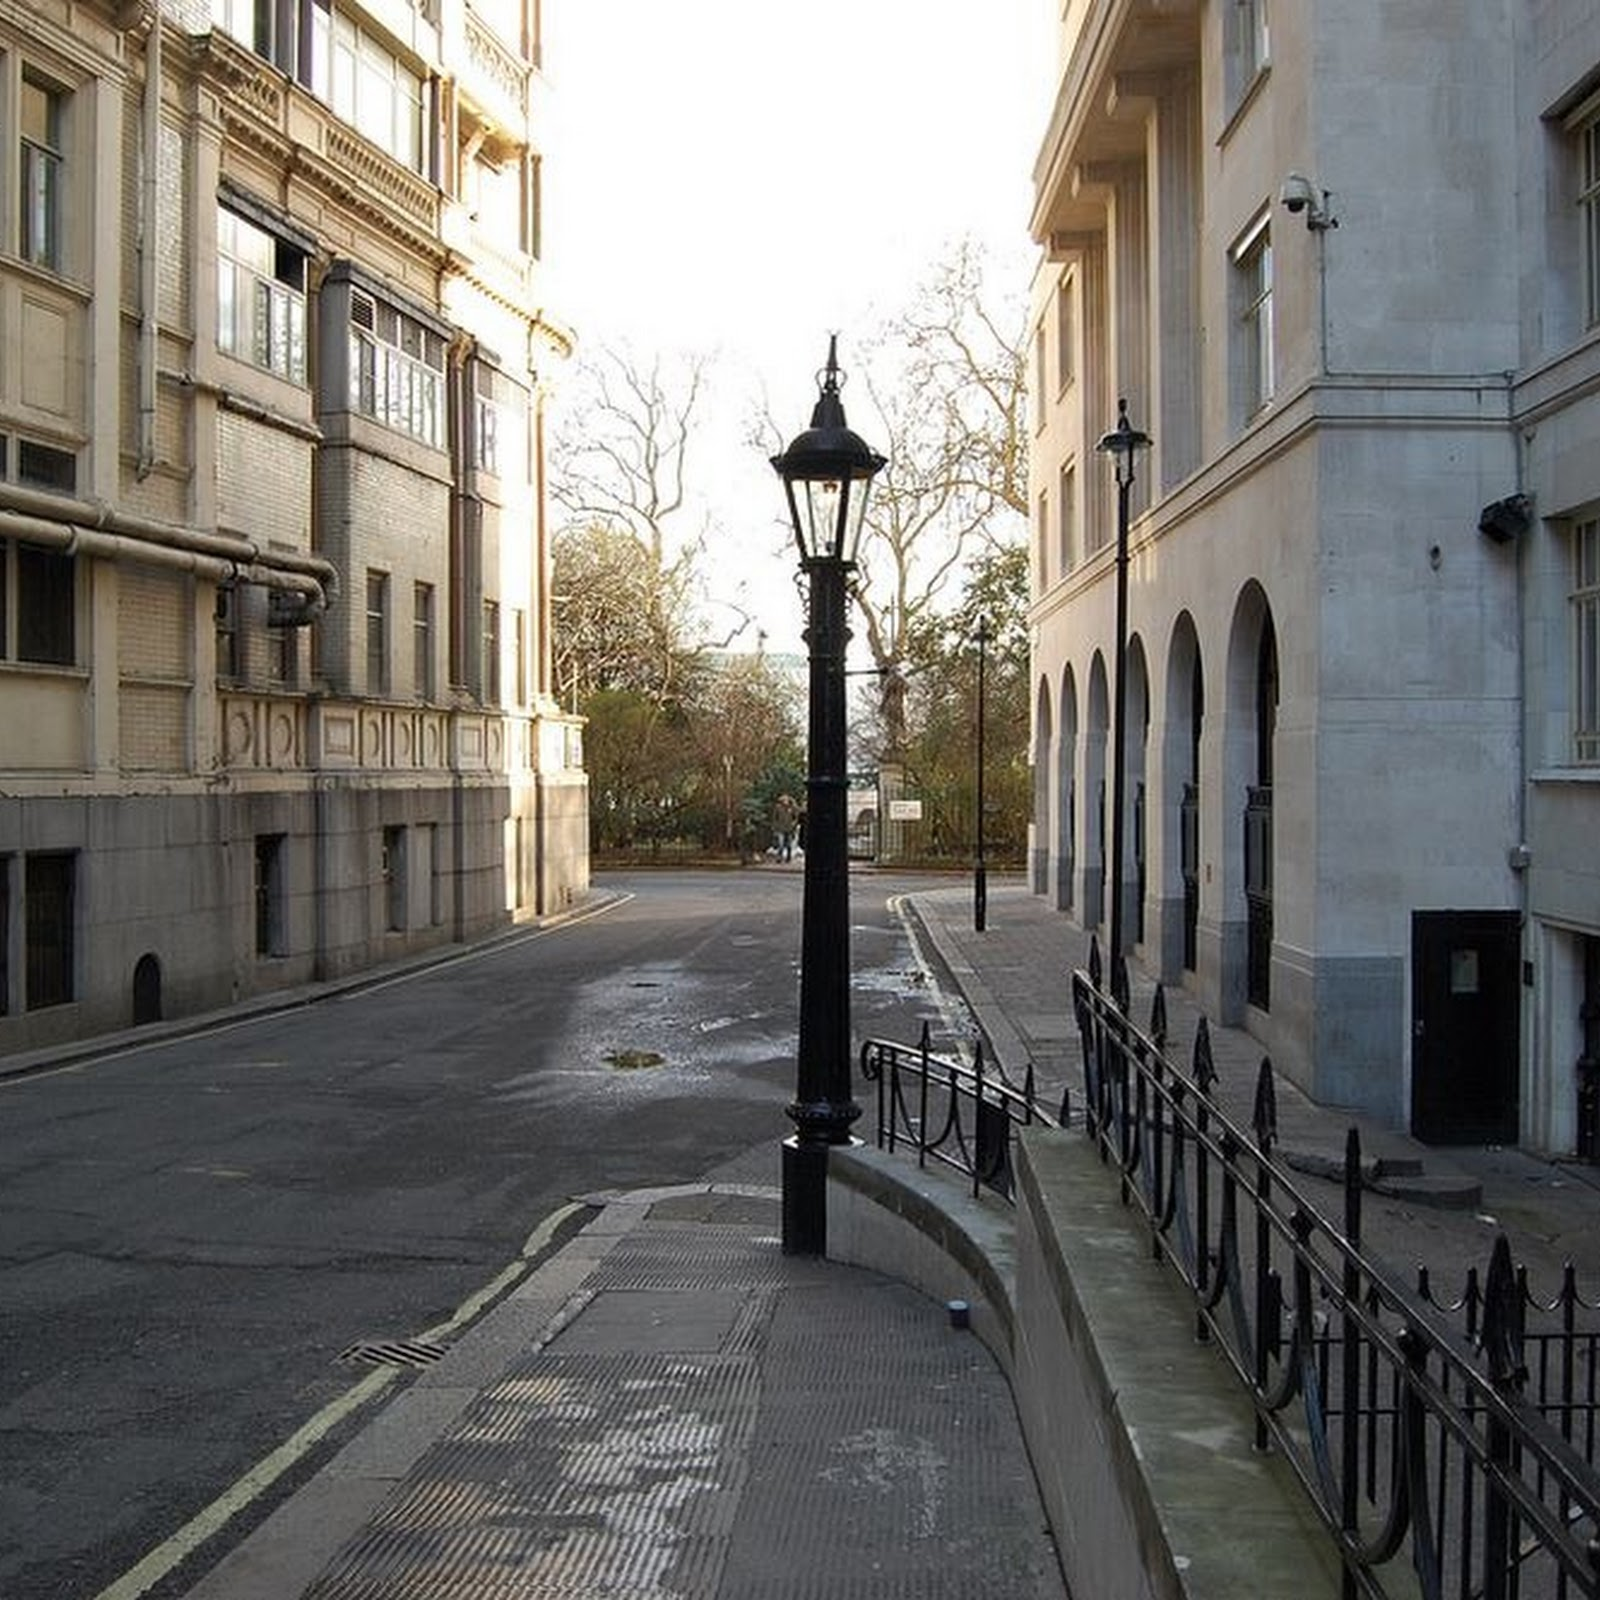 The Sewer Gas Destructor Lamps of England